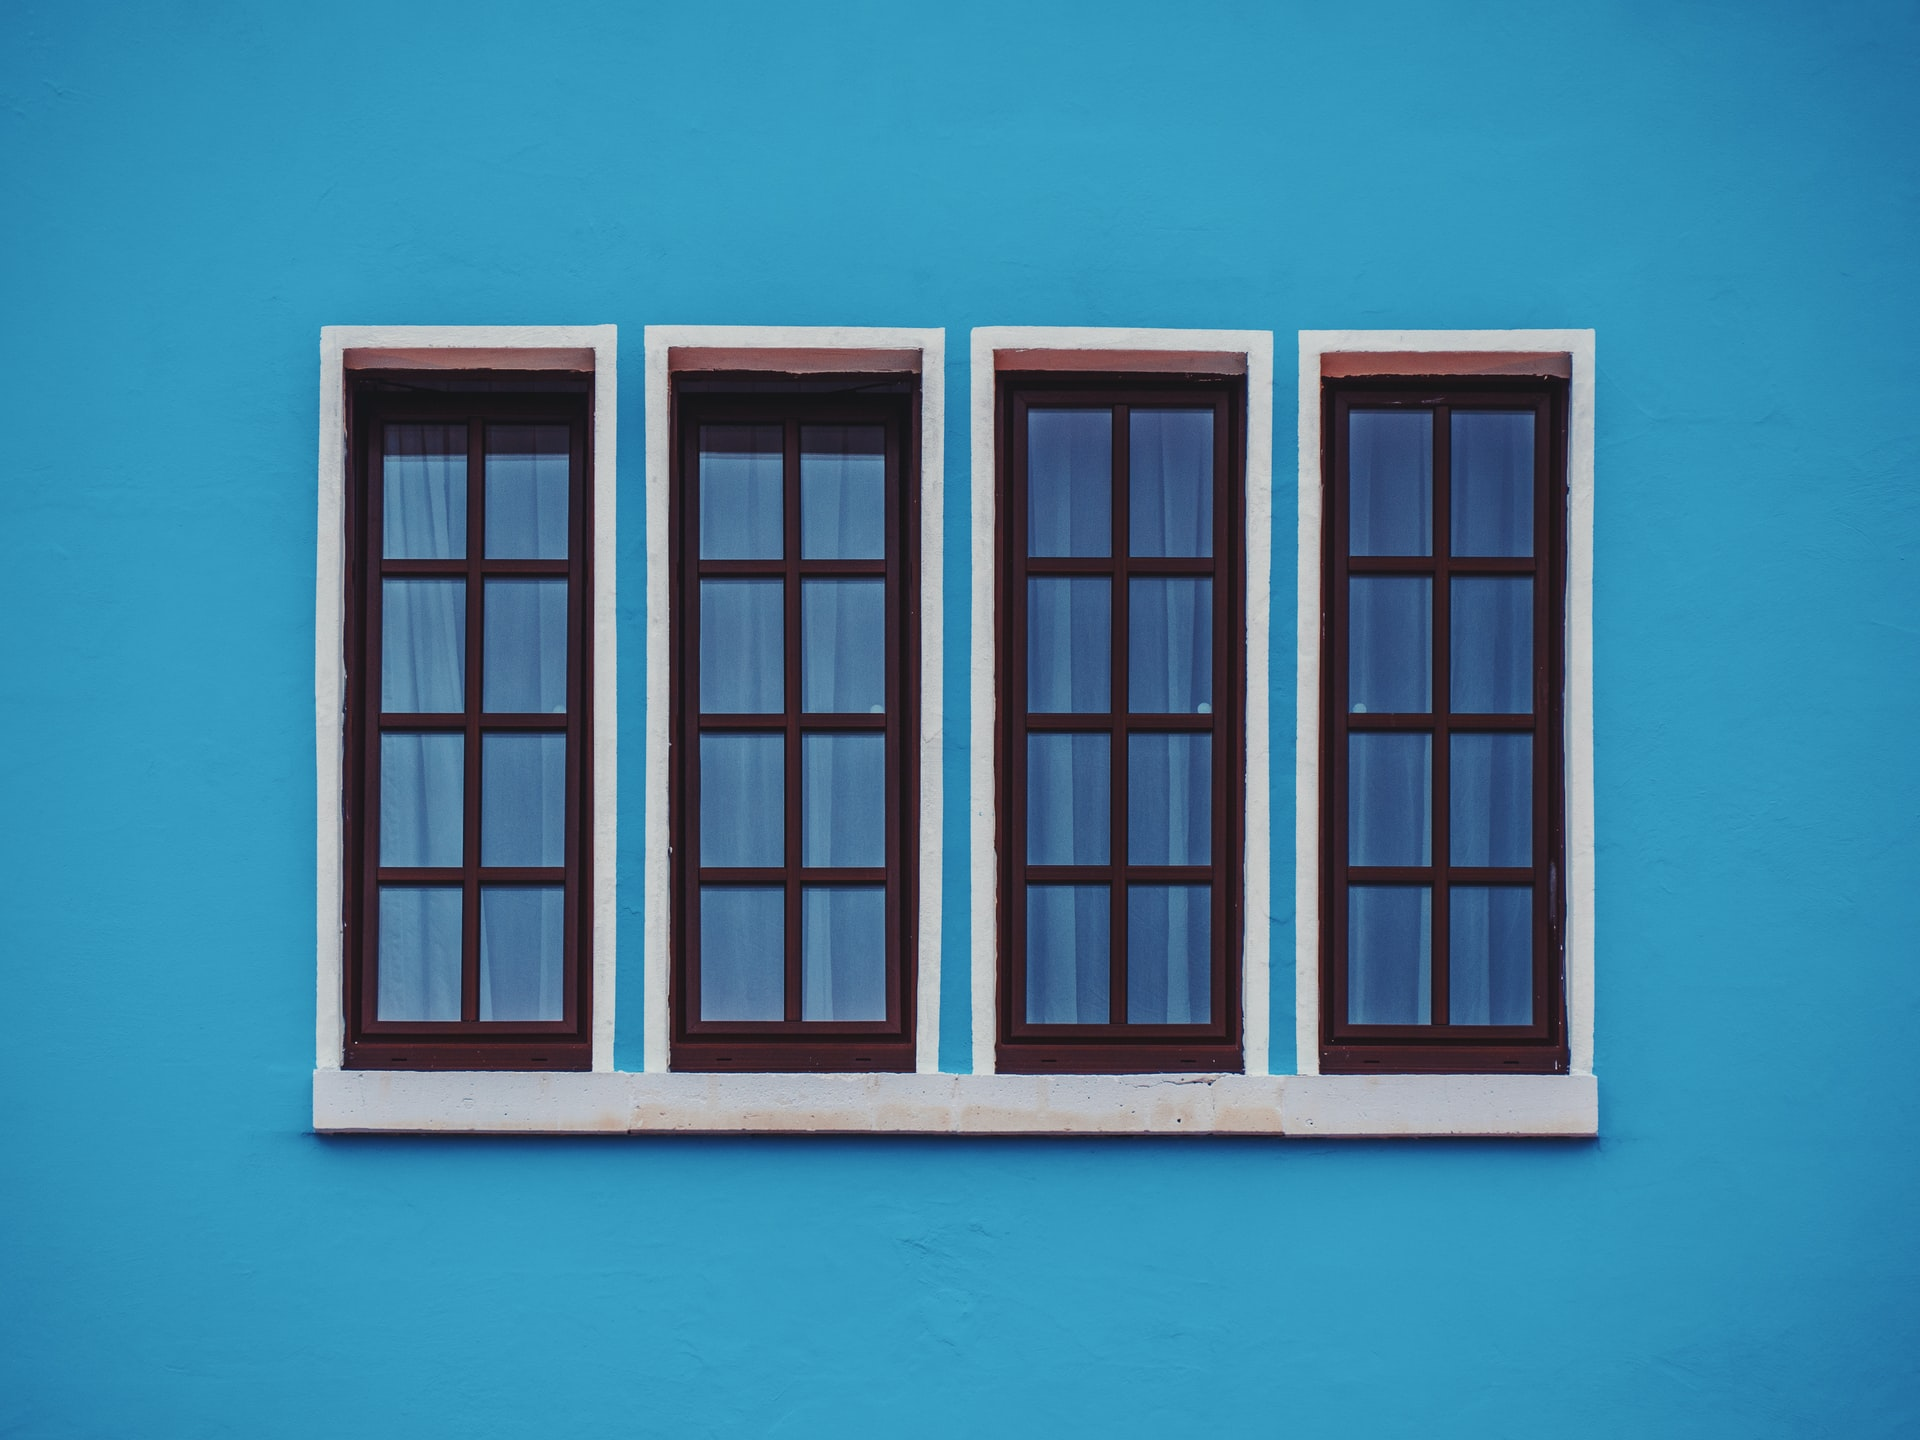 image - Replacing Your Windows? Here's What to Keep in Mind